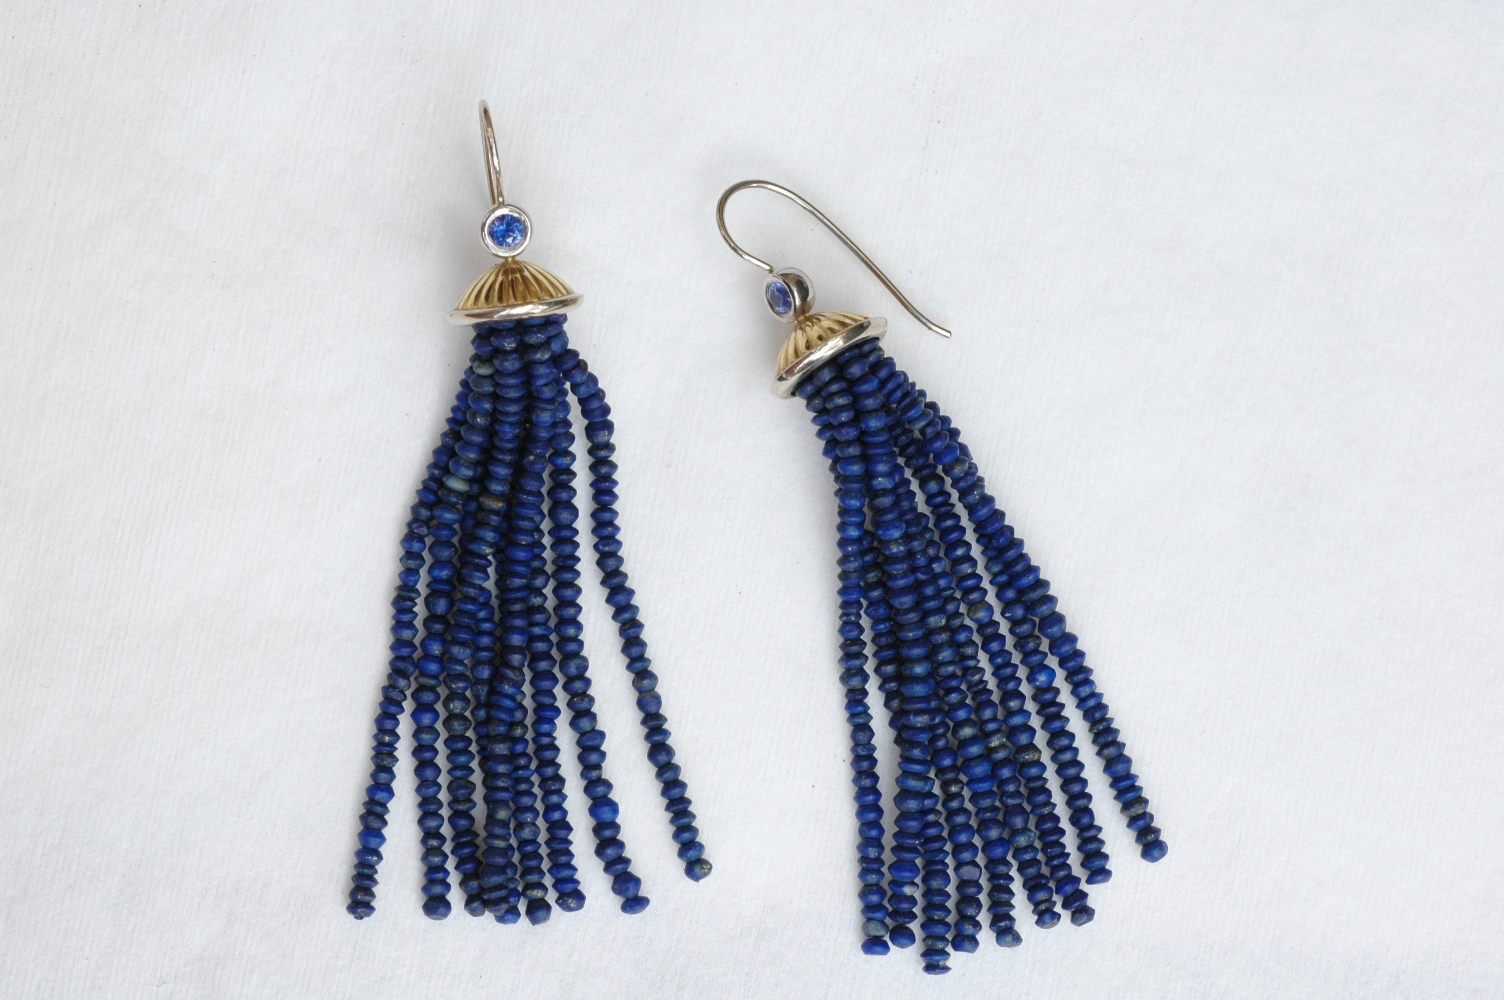 Tassel earrings by Gregore  with Afghanistan lapis lazuli beads strung onto 18k yellow and white gold earring tops, accented with  blue sapphires